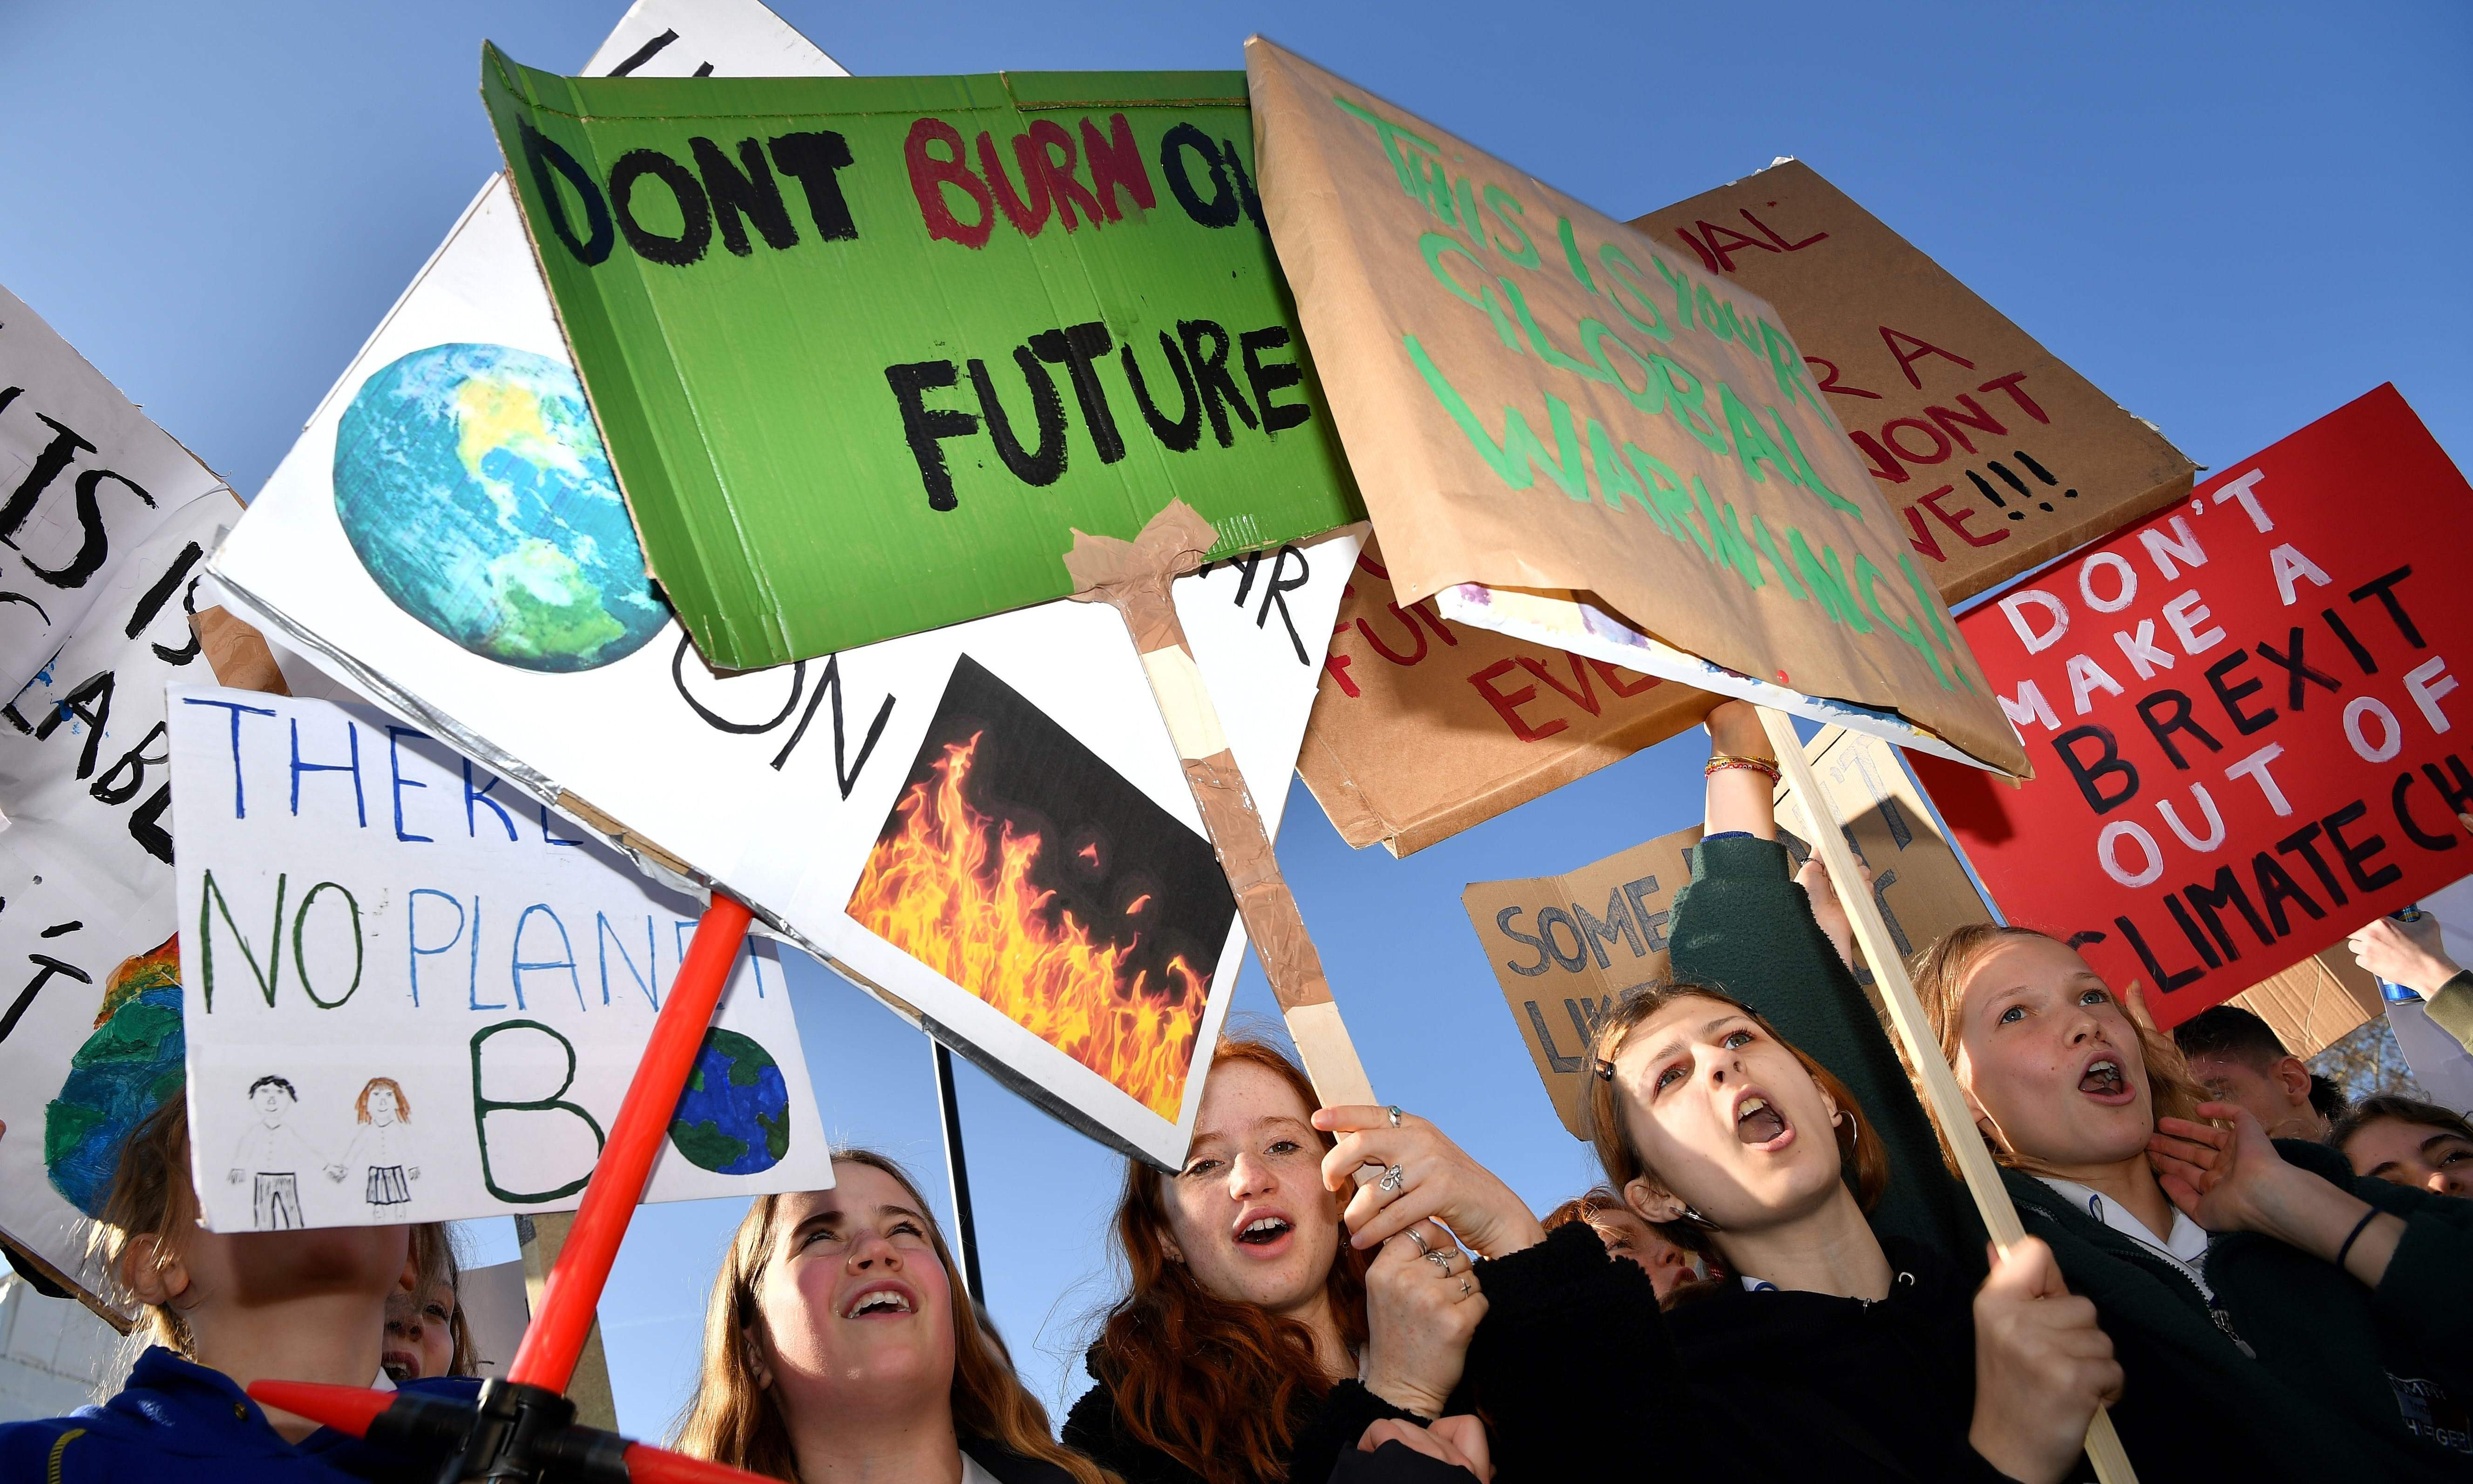 Don't know how to save the planet? This is what you can do